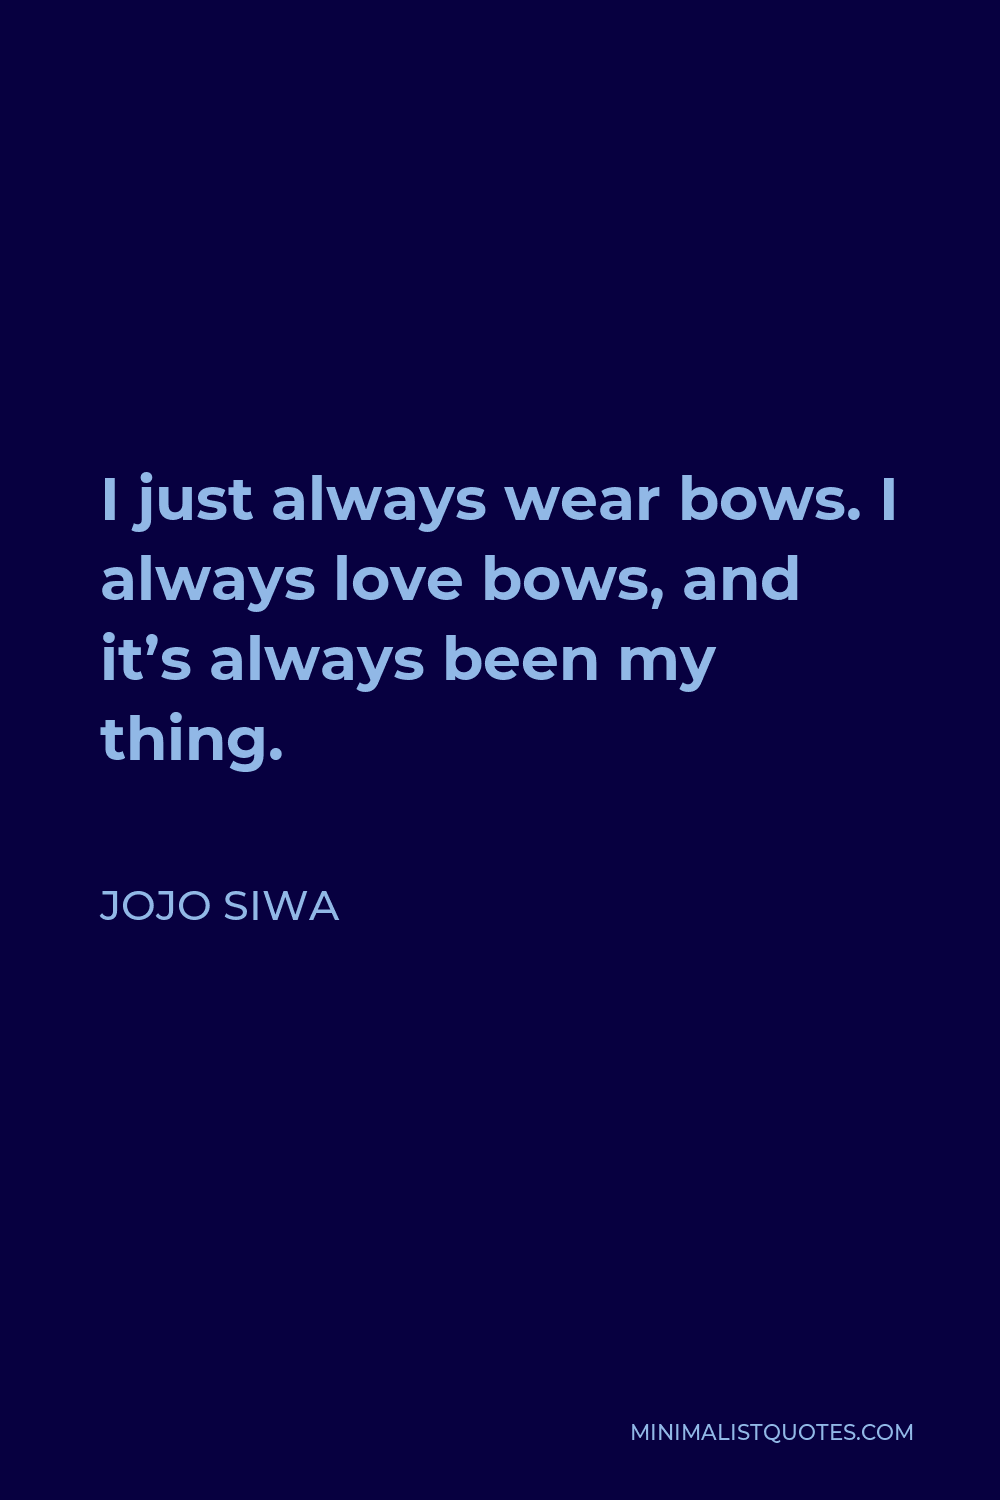 JoJo Siwa Quote - I just always wear bows. I always love bows, and it's always been my thing.